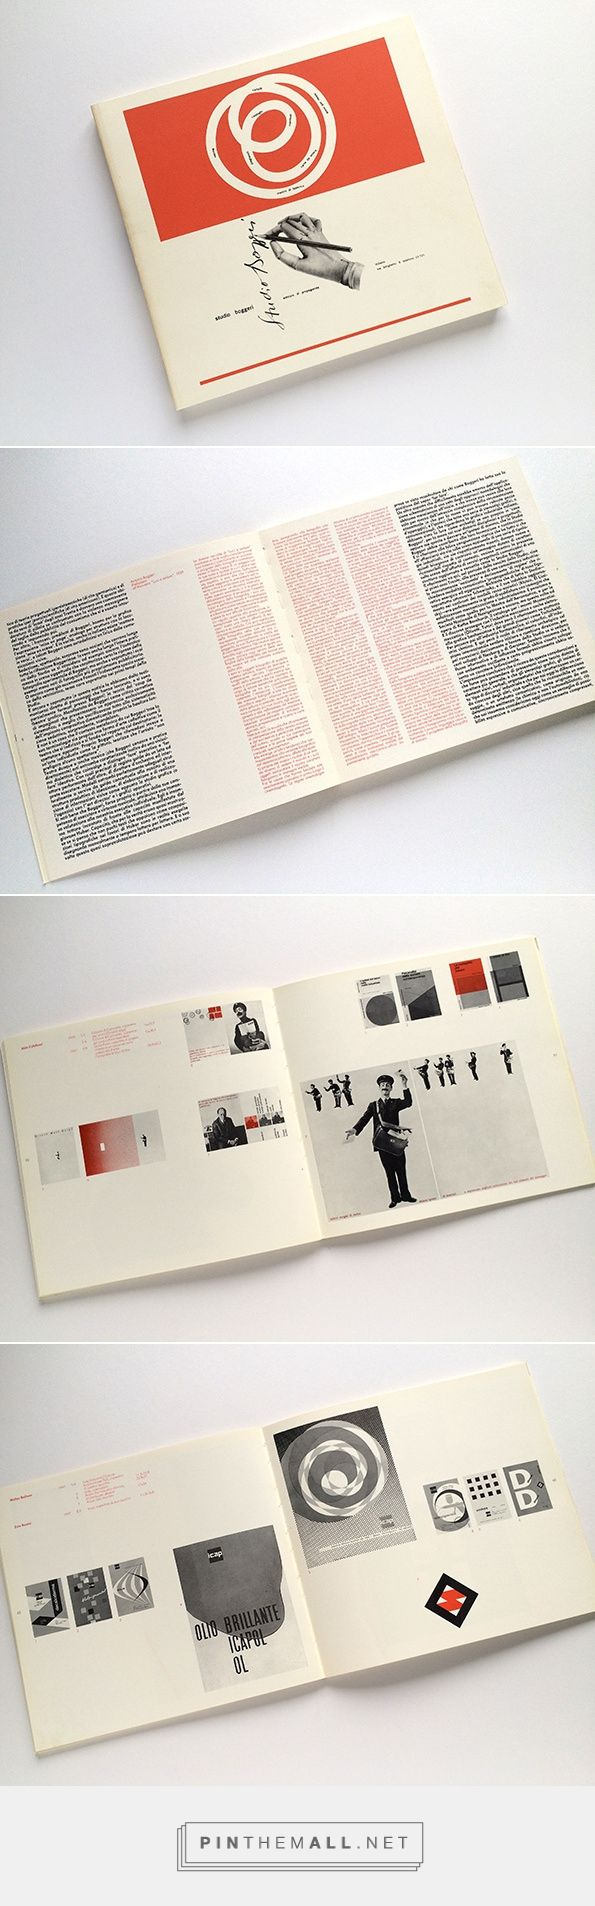 It's Nice That : Typography lovers, listen up! It's Hamish Muir's well-stocked Bookshelf, Bruno Monguzzi: Lo Studio Boggeri: 1933-1981 - created via http://pinthemall.net